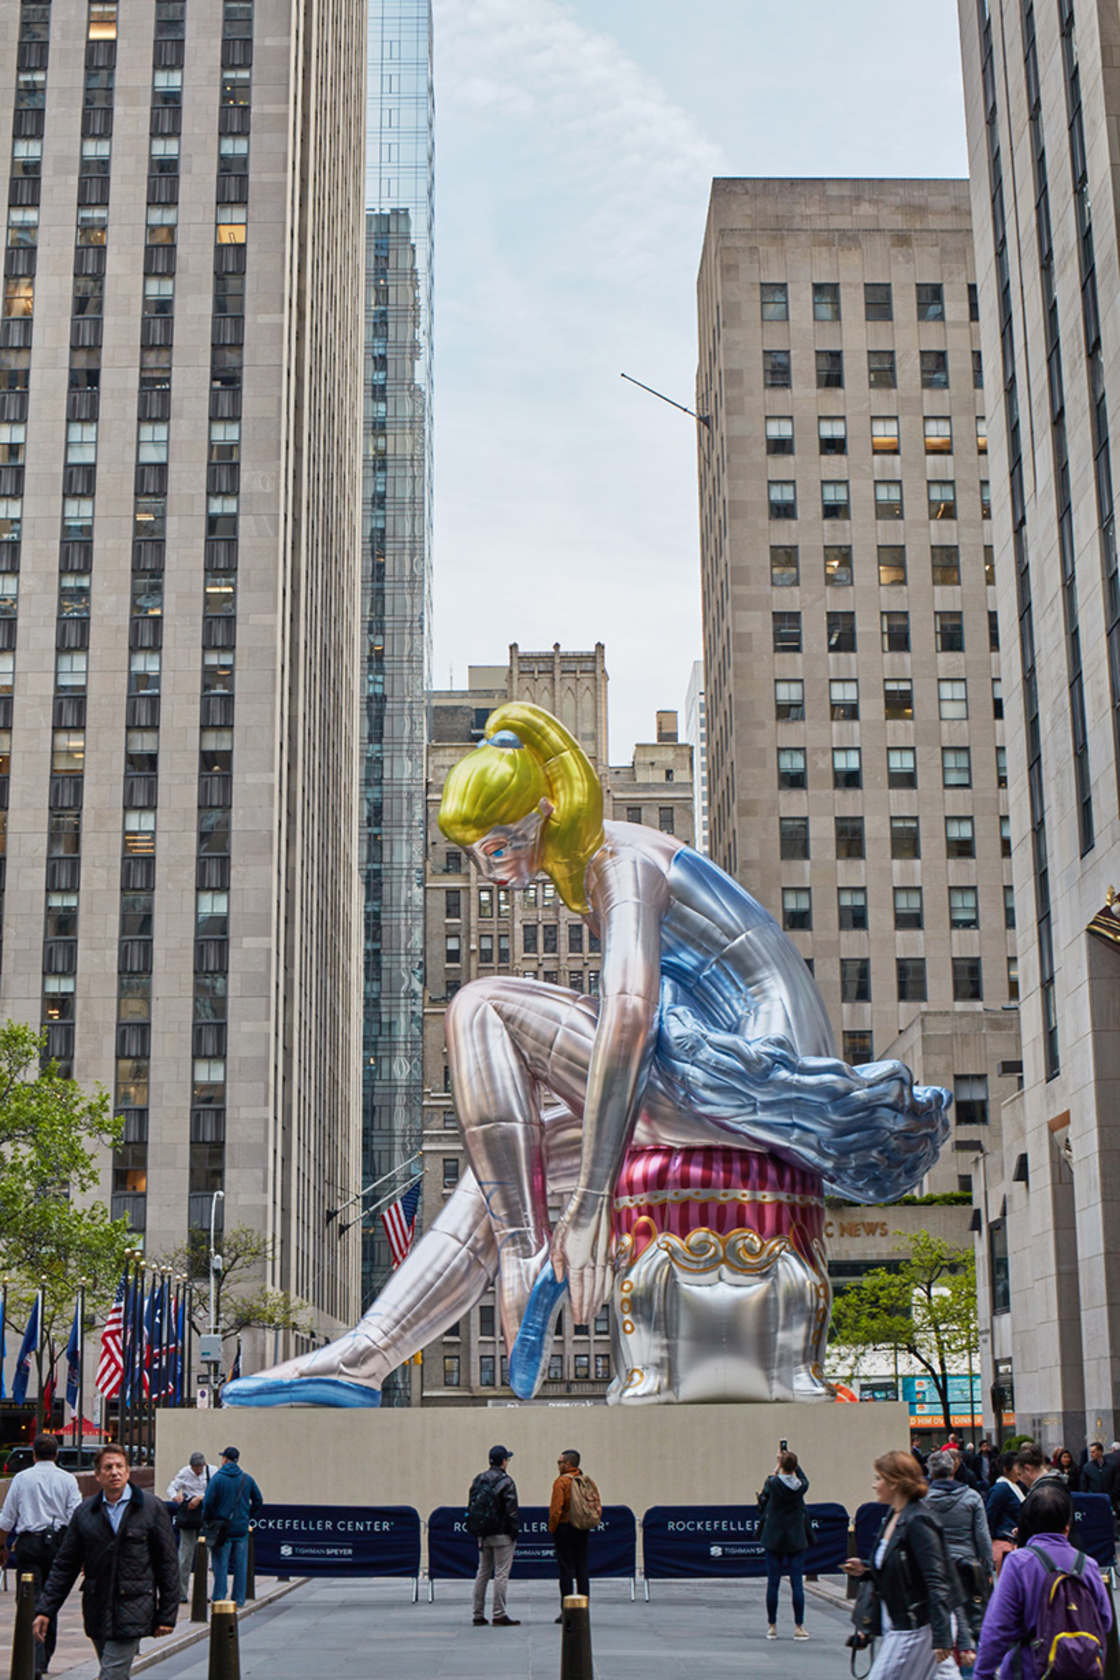 © Jeff Koons / photo by Tom Powel Imaging